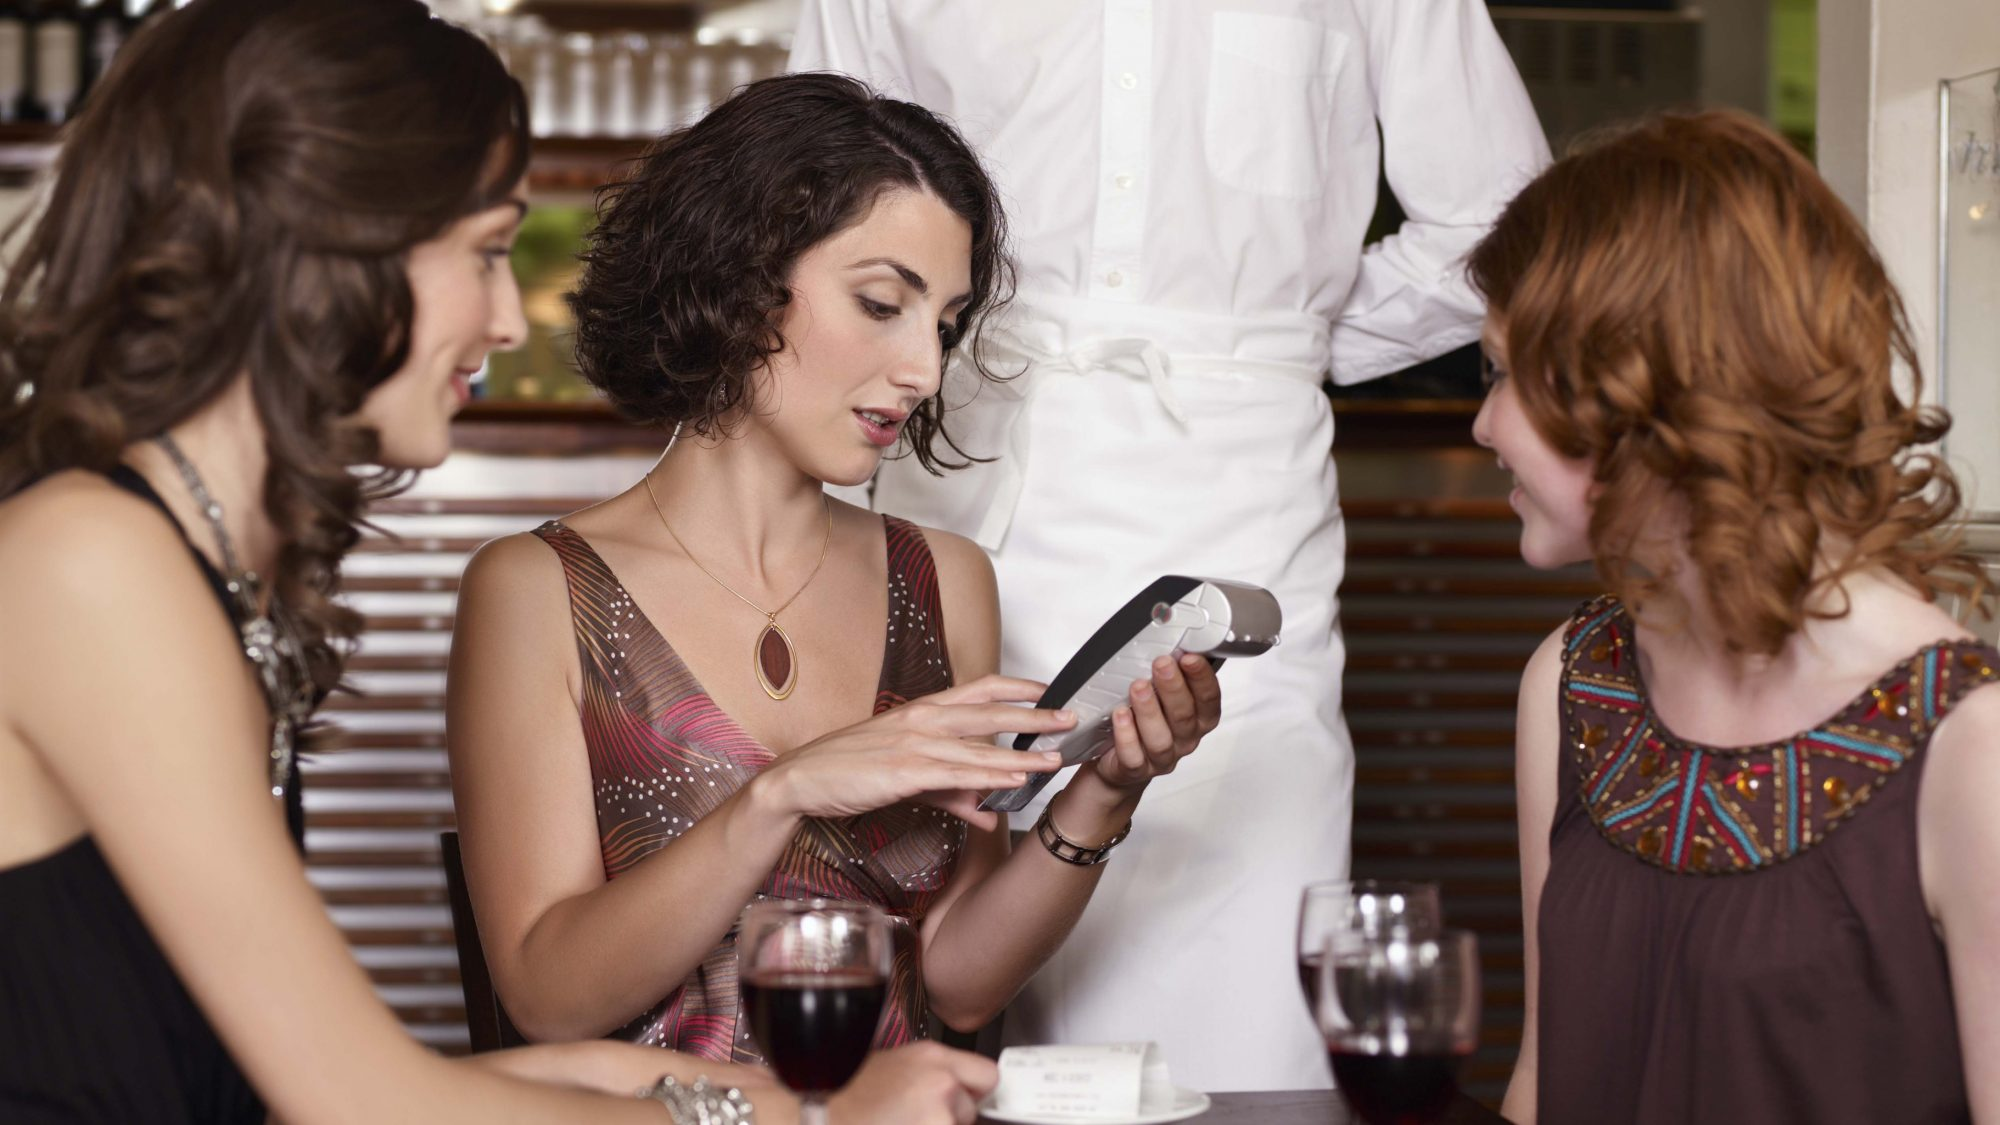 5 Ways to Avoid Getting Stuck with the Bill at Dinner